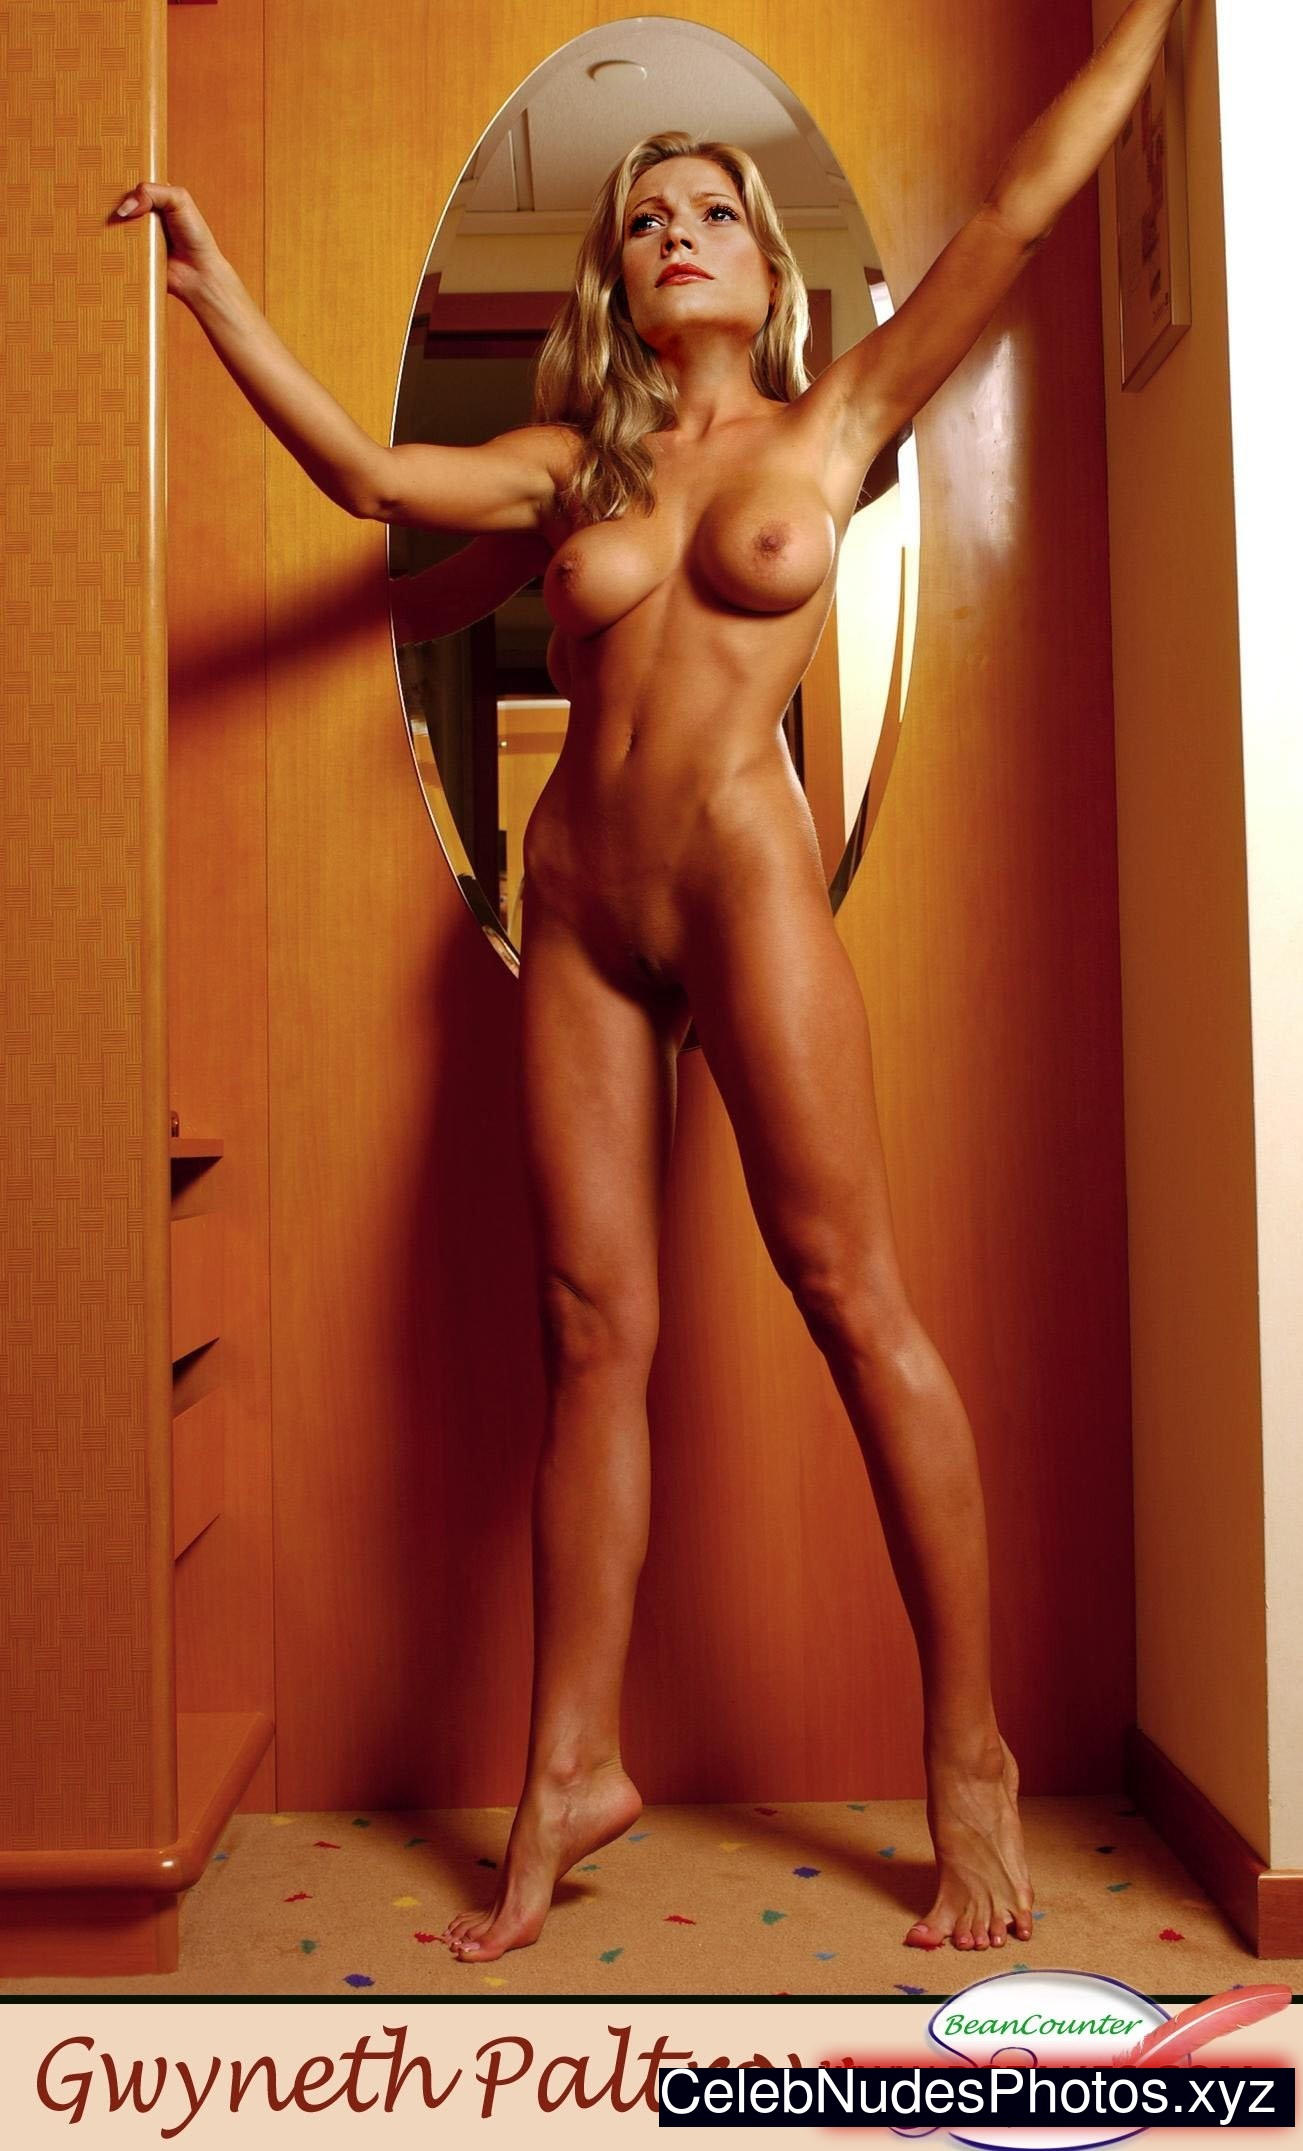 naked pictures of gwyneth paltrow